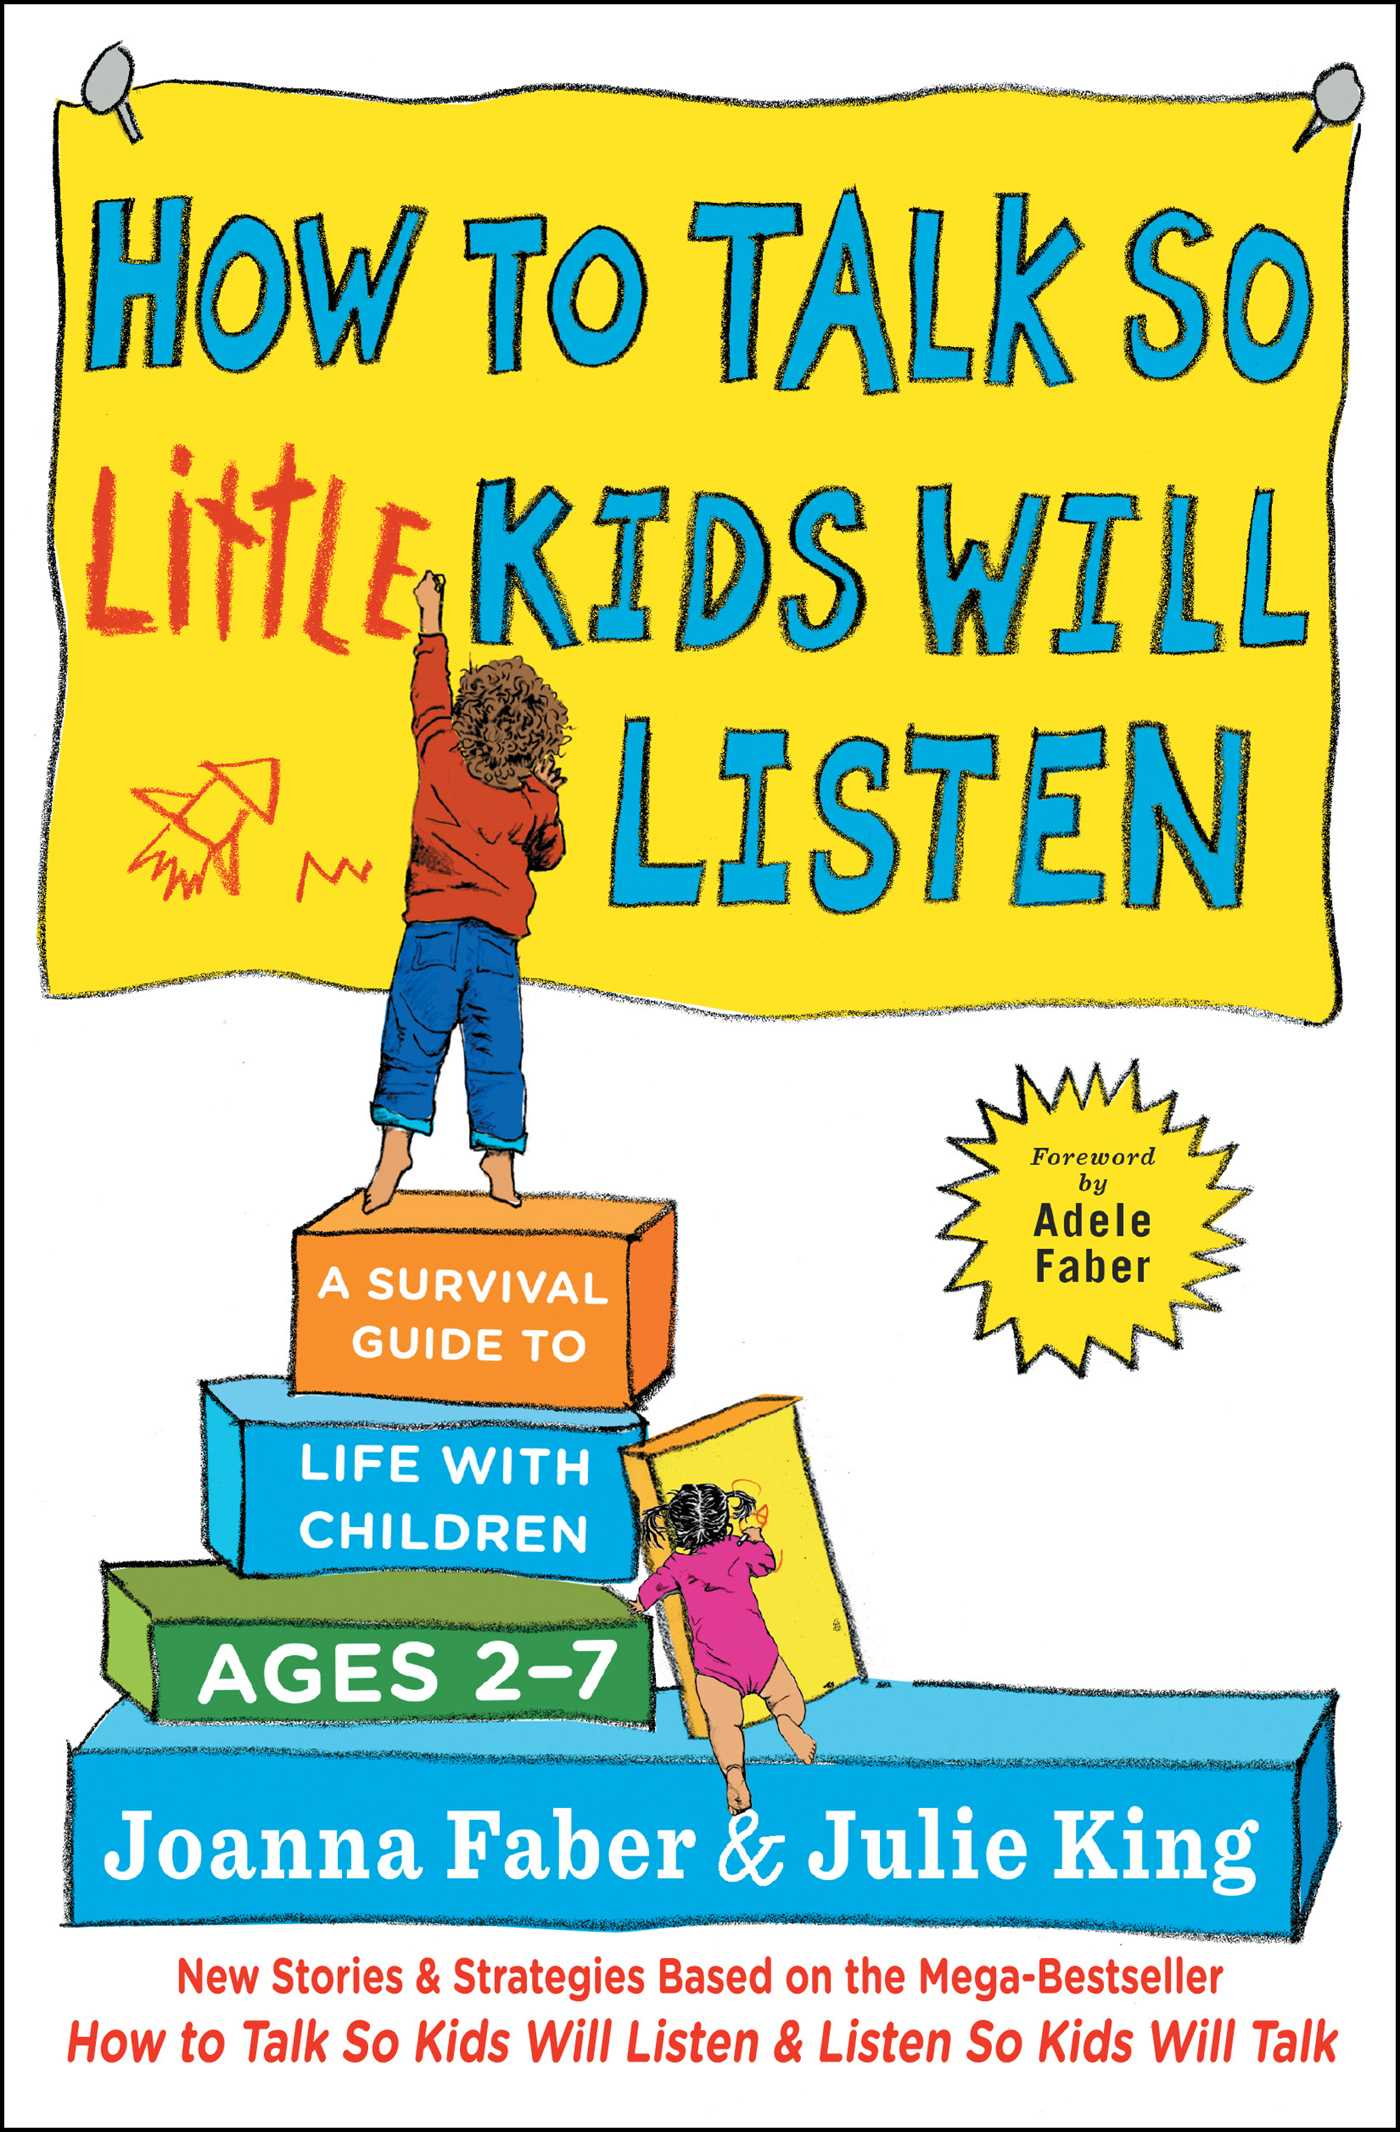 How to talk so little kids will listen 9781501131639 hr